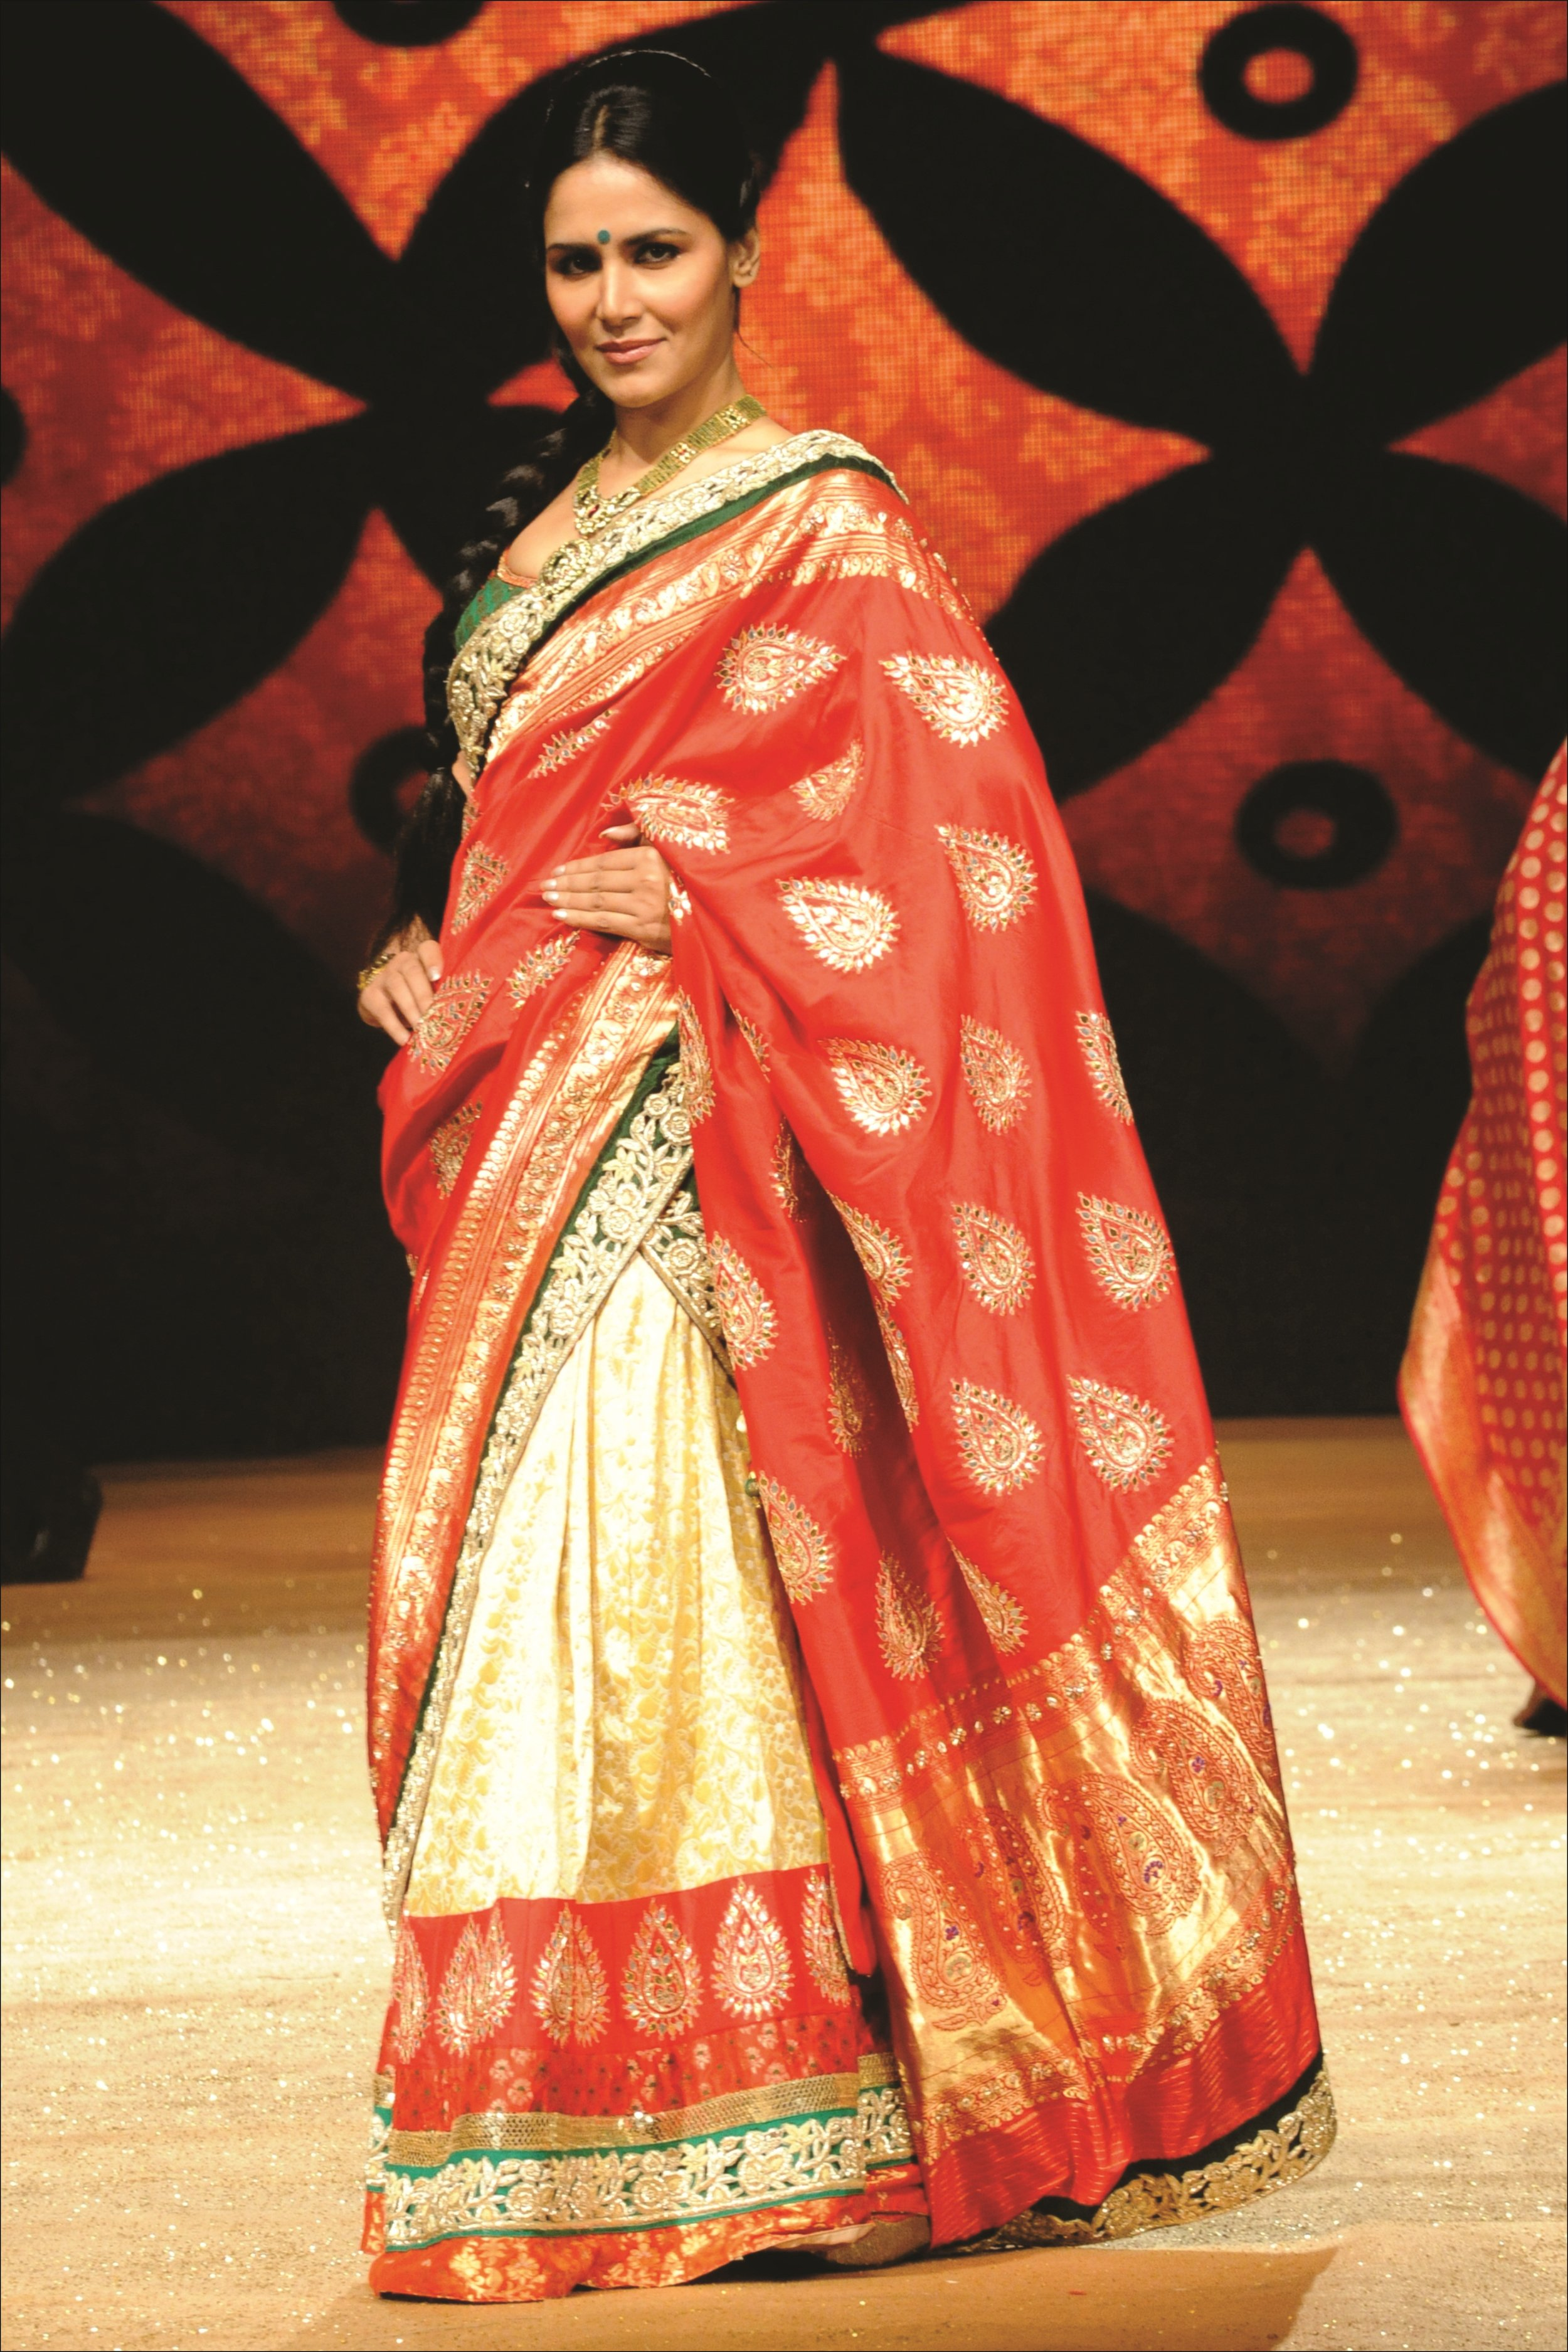 Lehnga Saree from Shyamal Bhumika in traditional red and gold colors